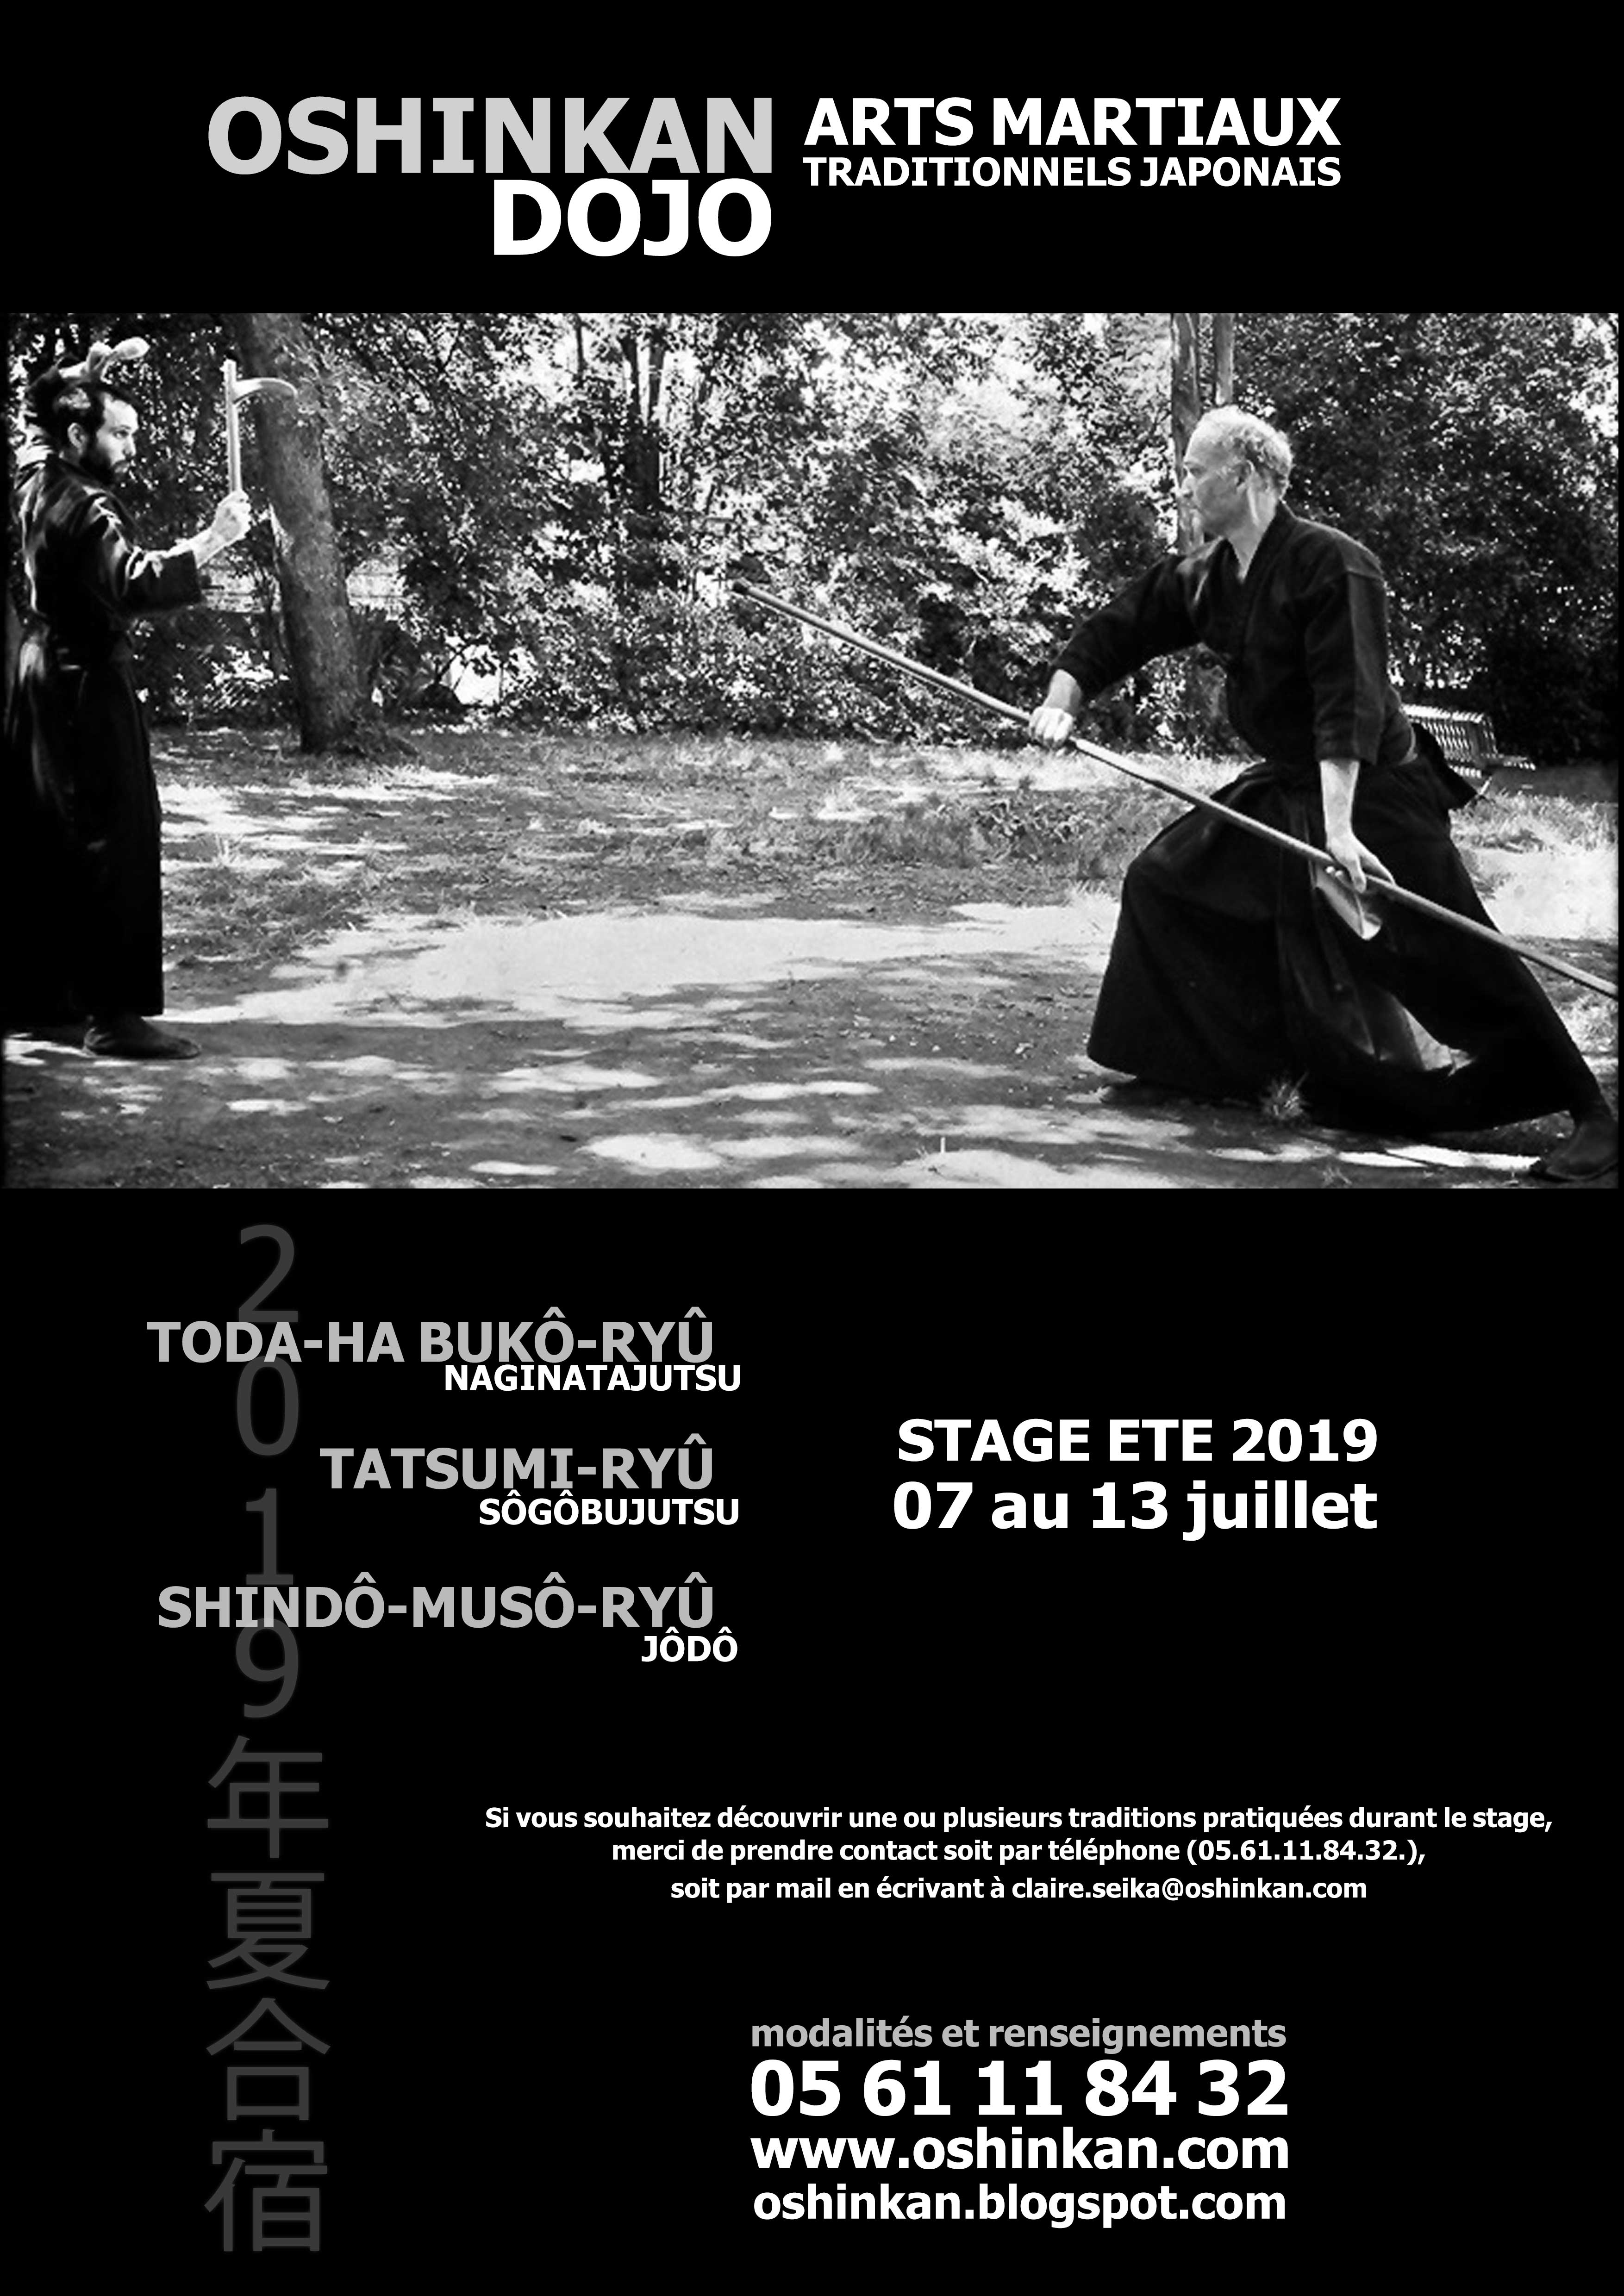 stage arts martiaux dojo oshinkan 07 2019